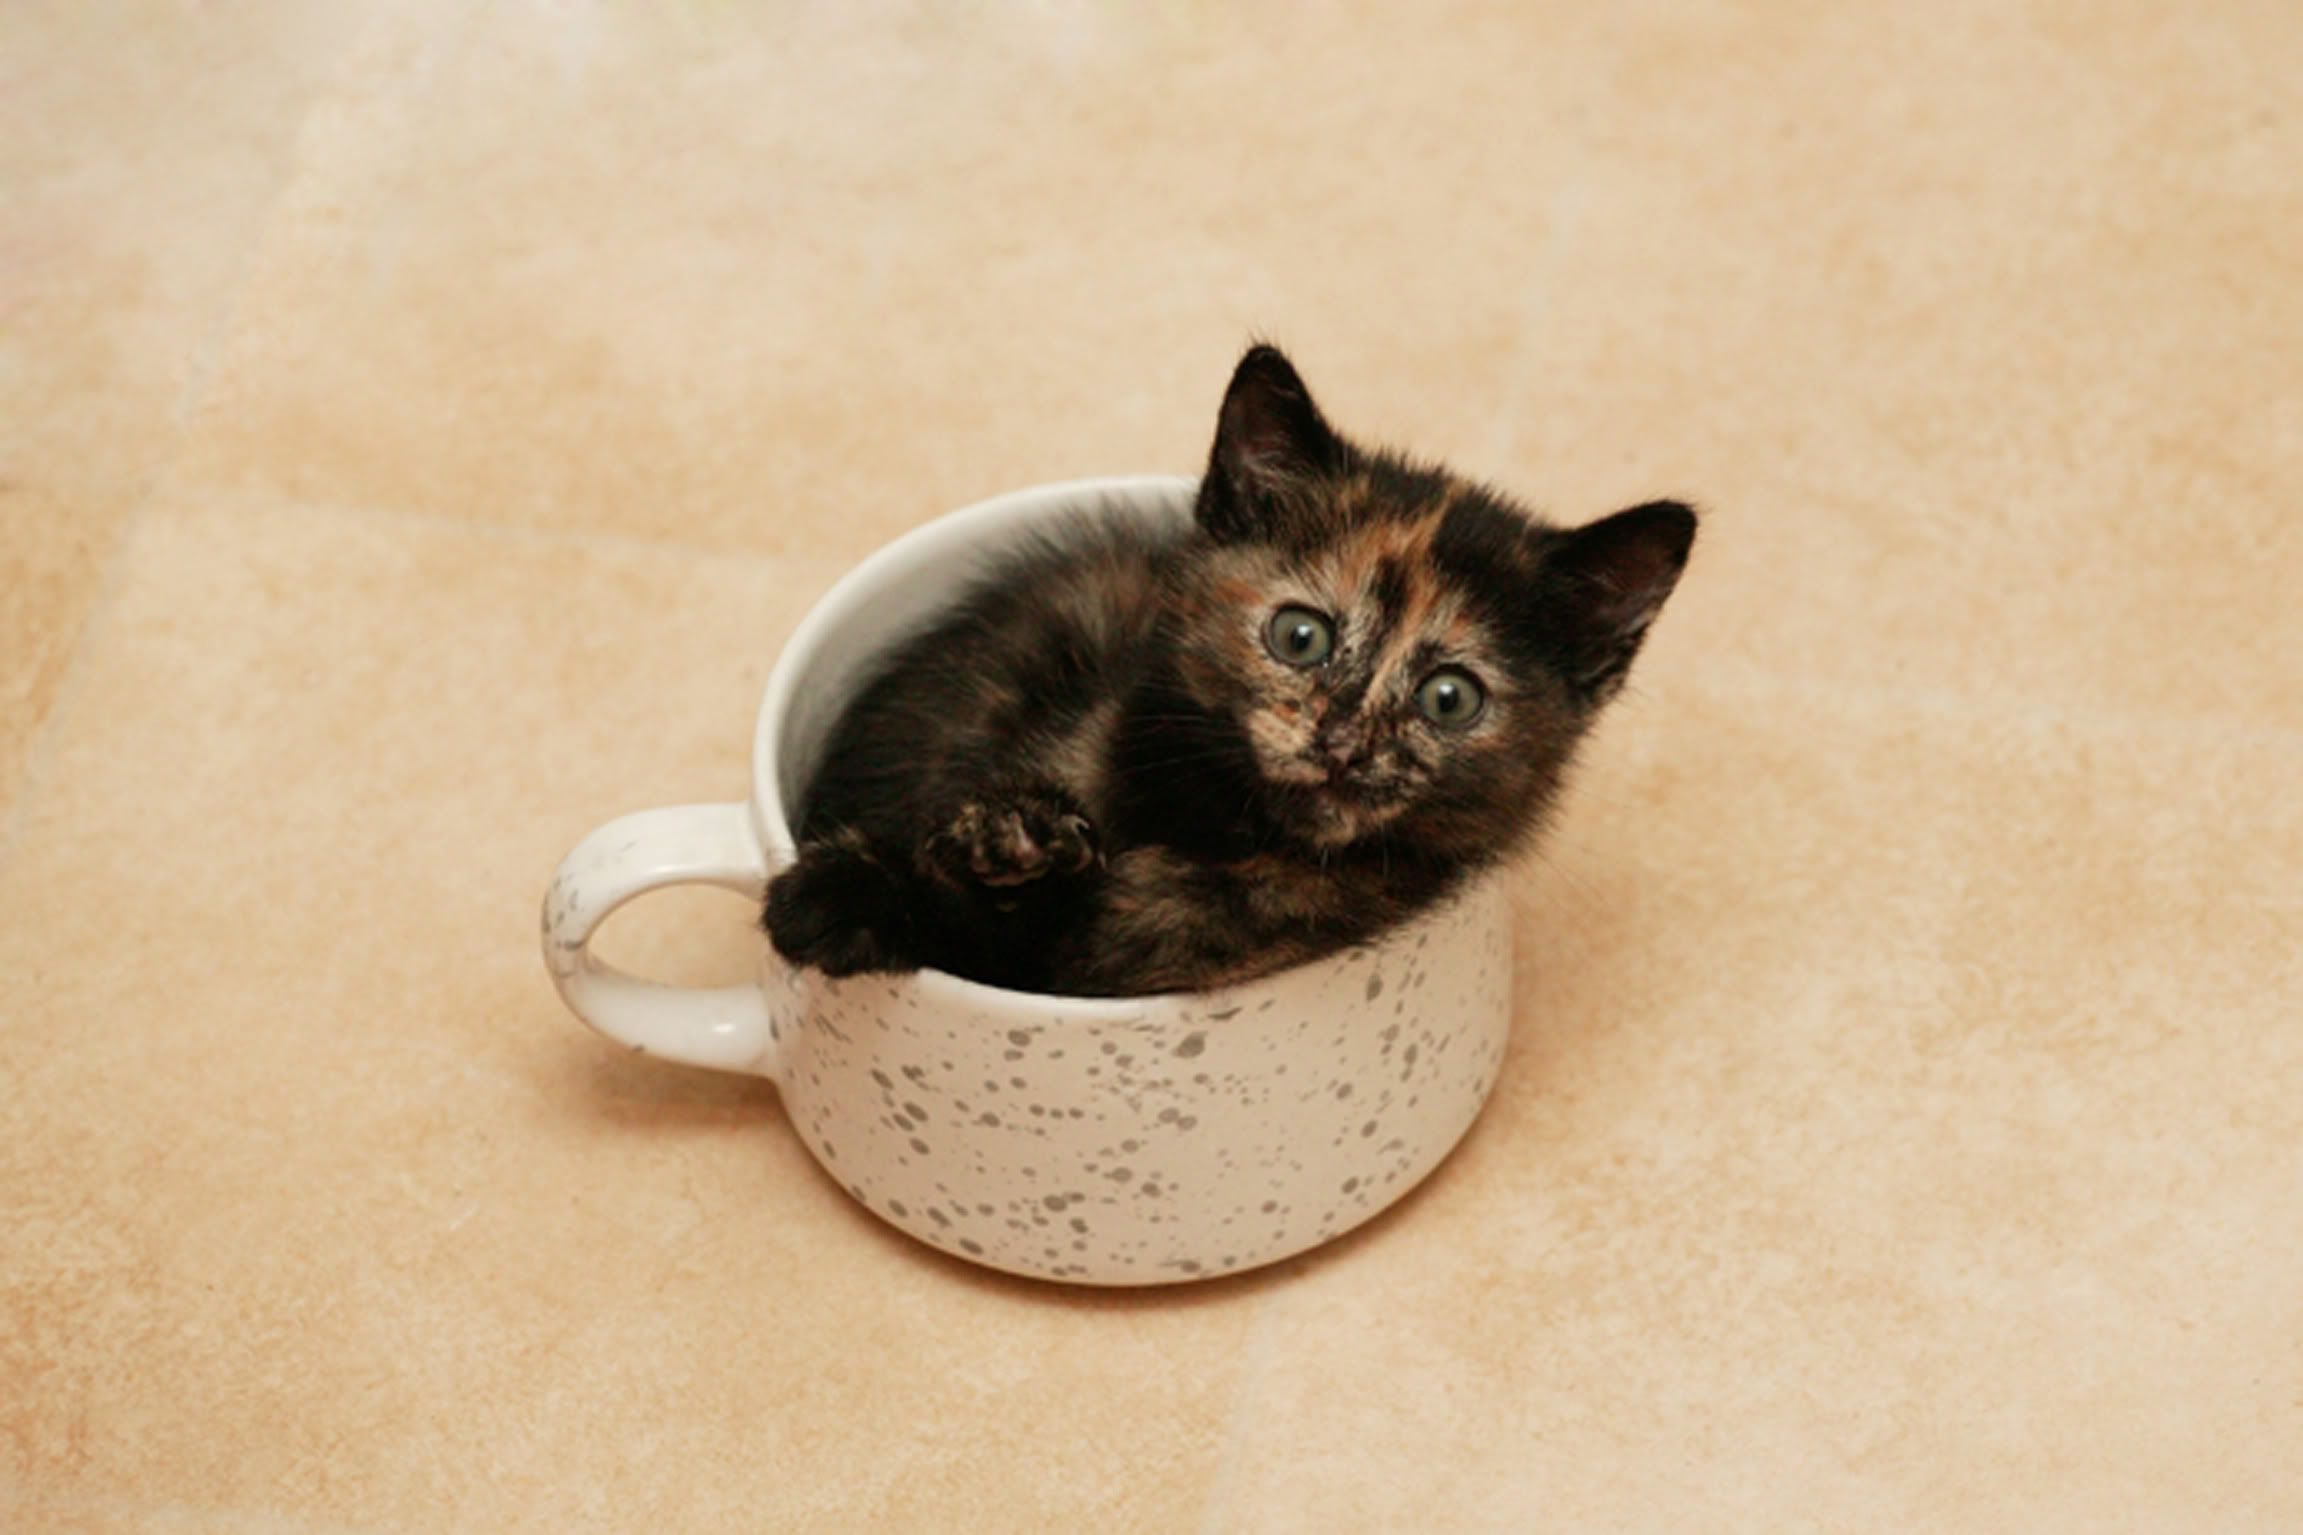 Boo In A Cup Cats Kittens Cutest Cat Pics